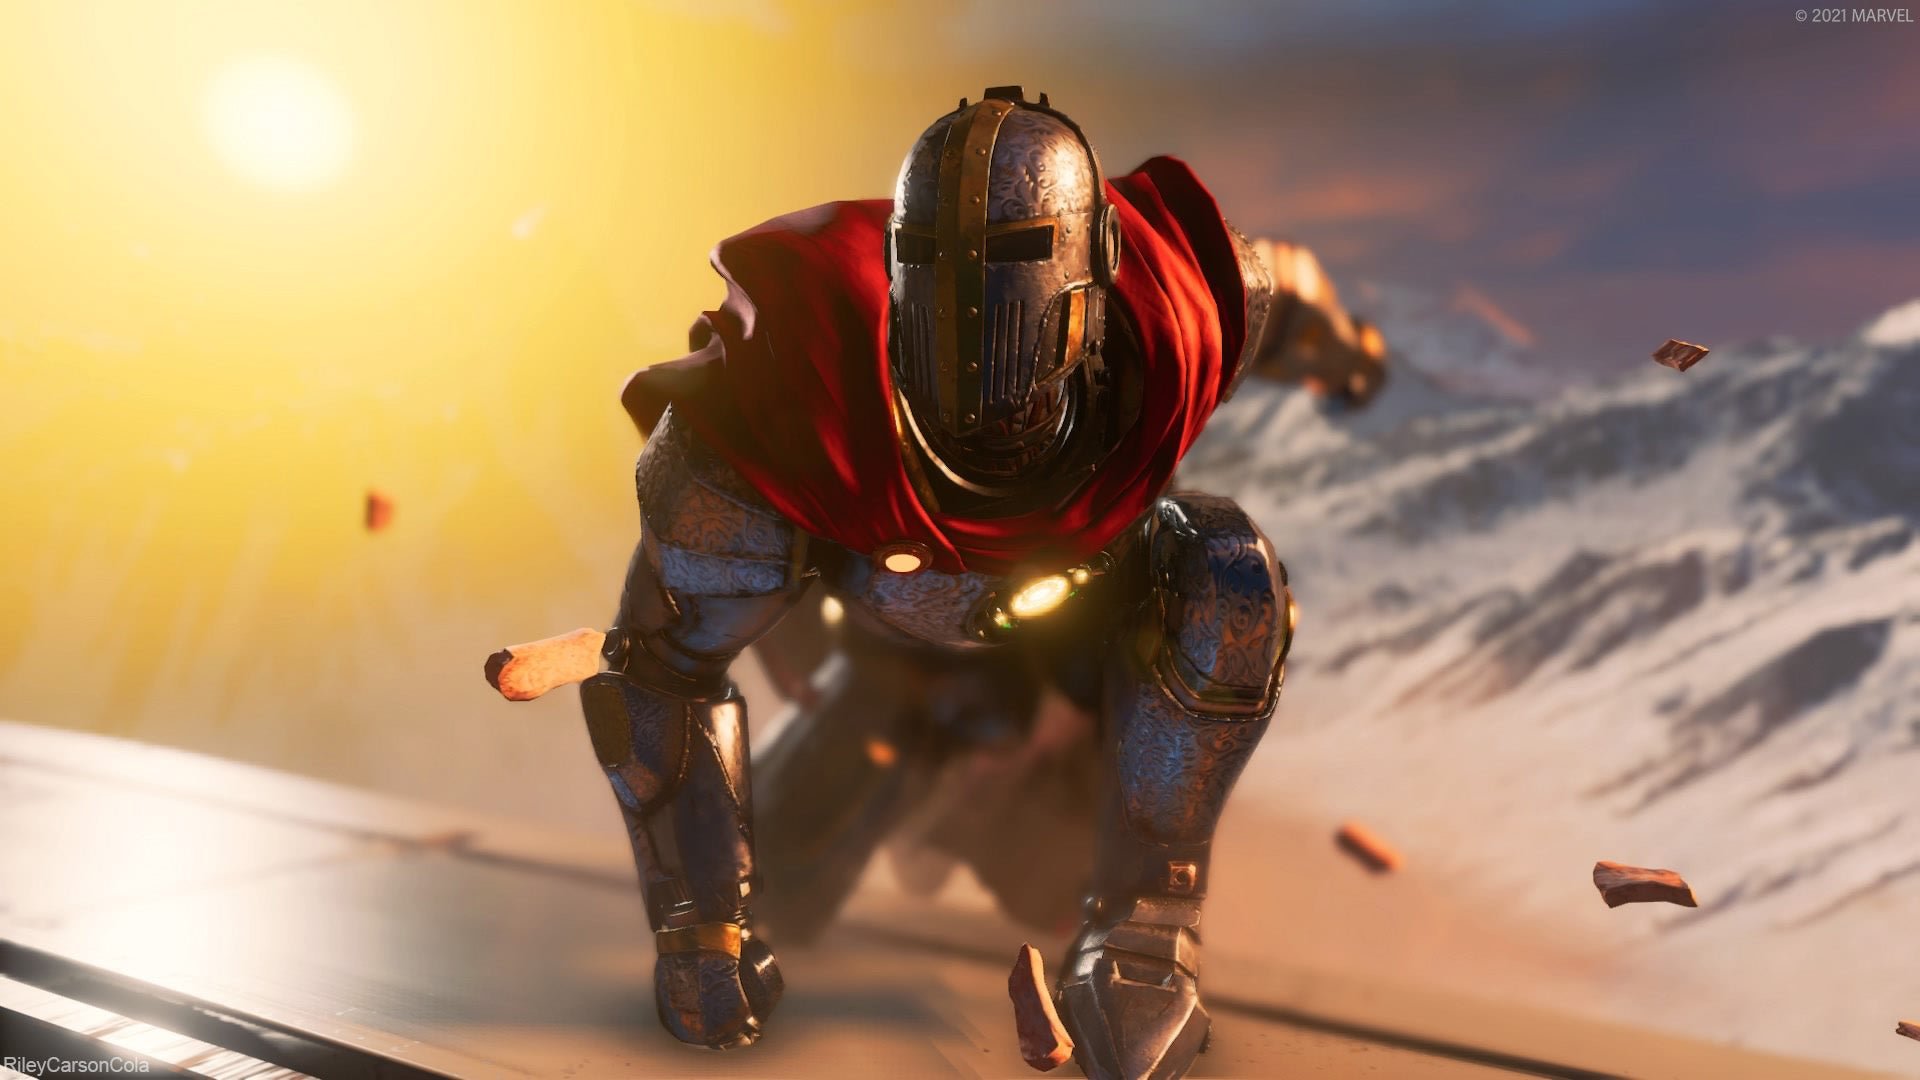 Iron Knight landing. Digital Photography by RileyCarsonCola